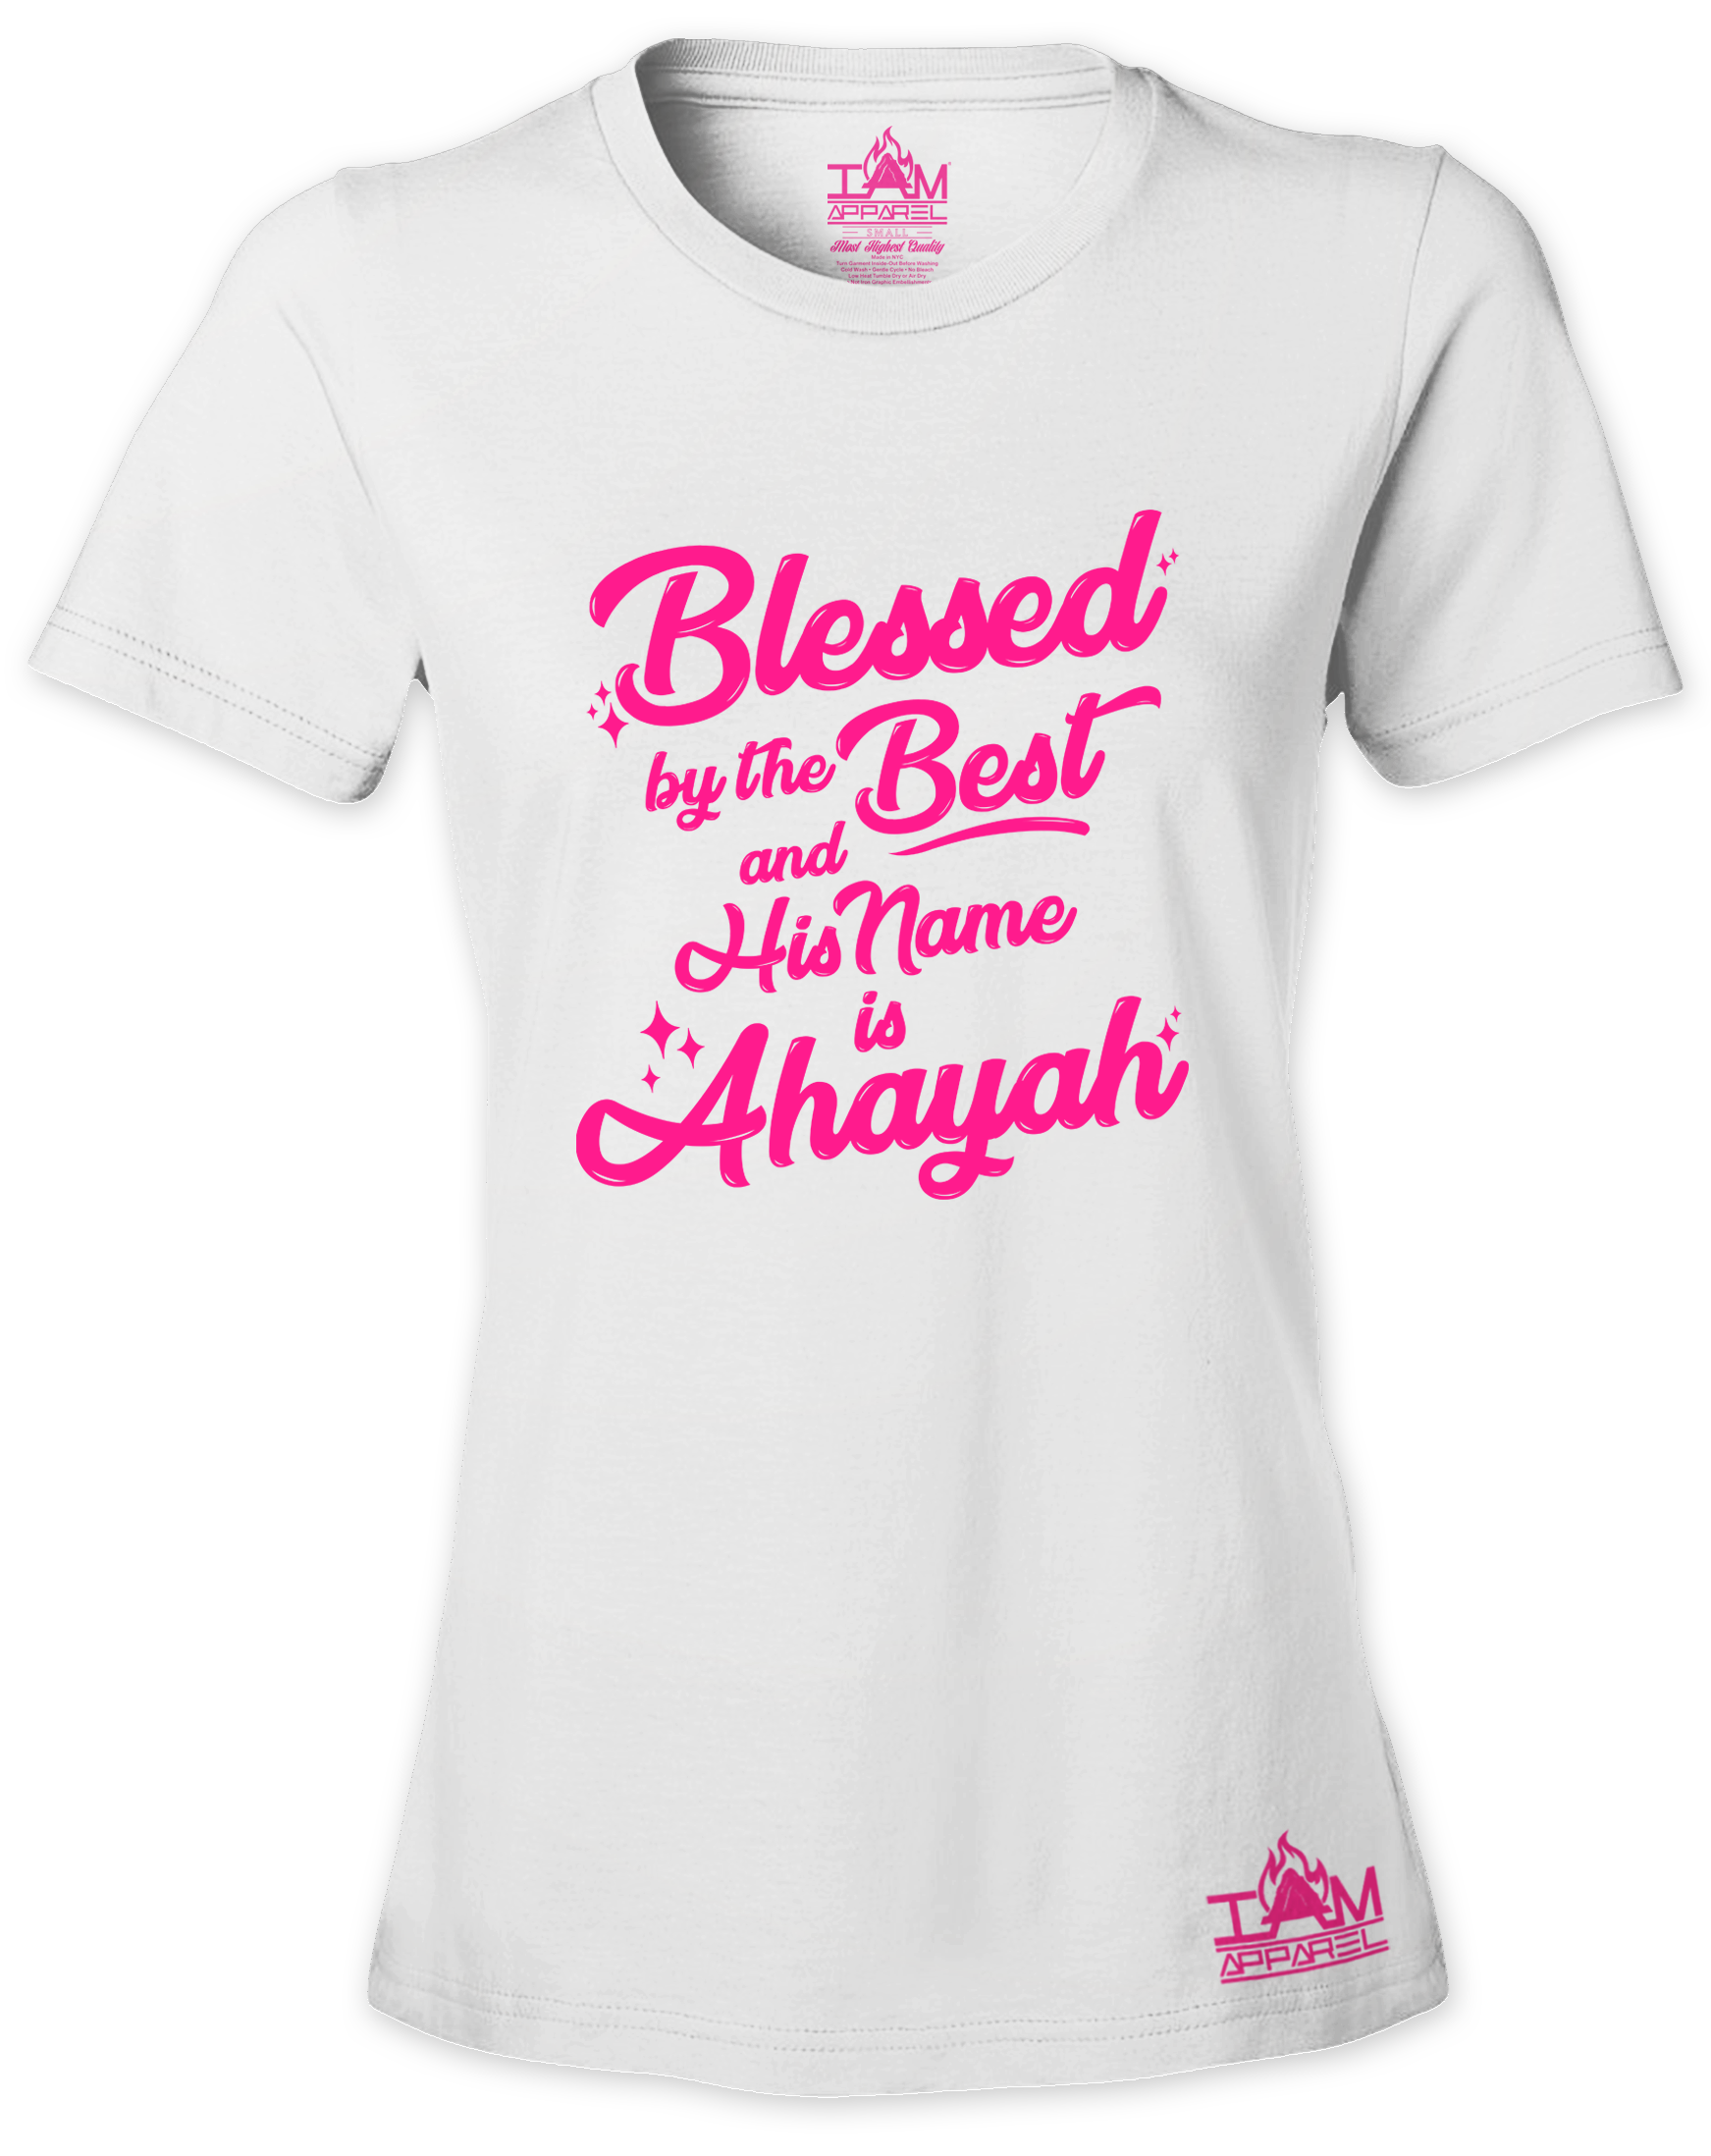 Woman's  HOT PINK SERIES Blessed by the best  Short Sleeved T-shirt 00135